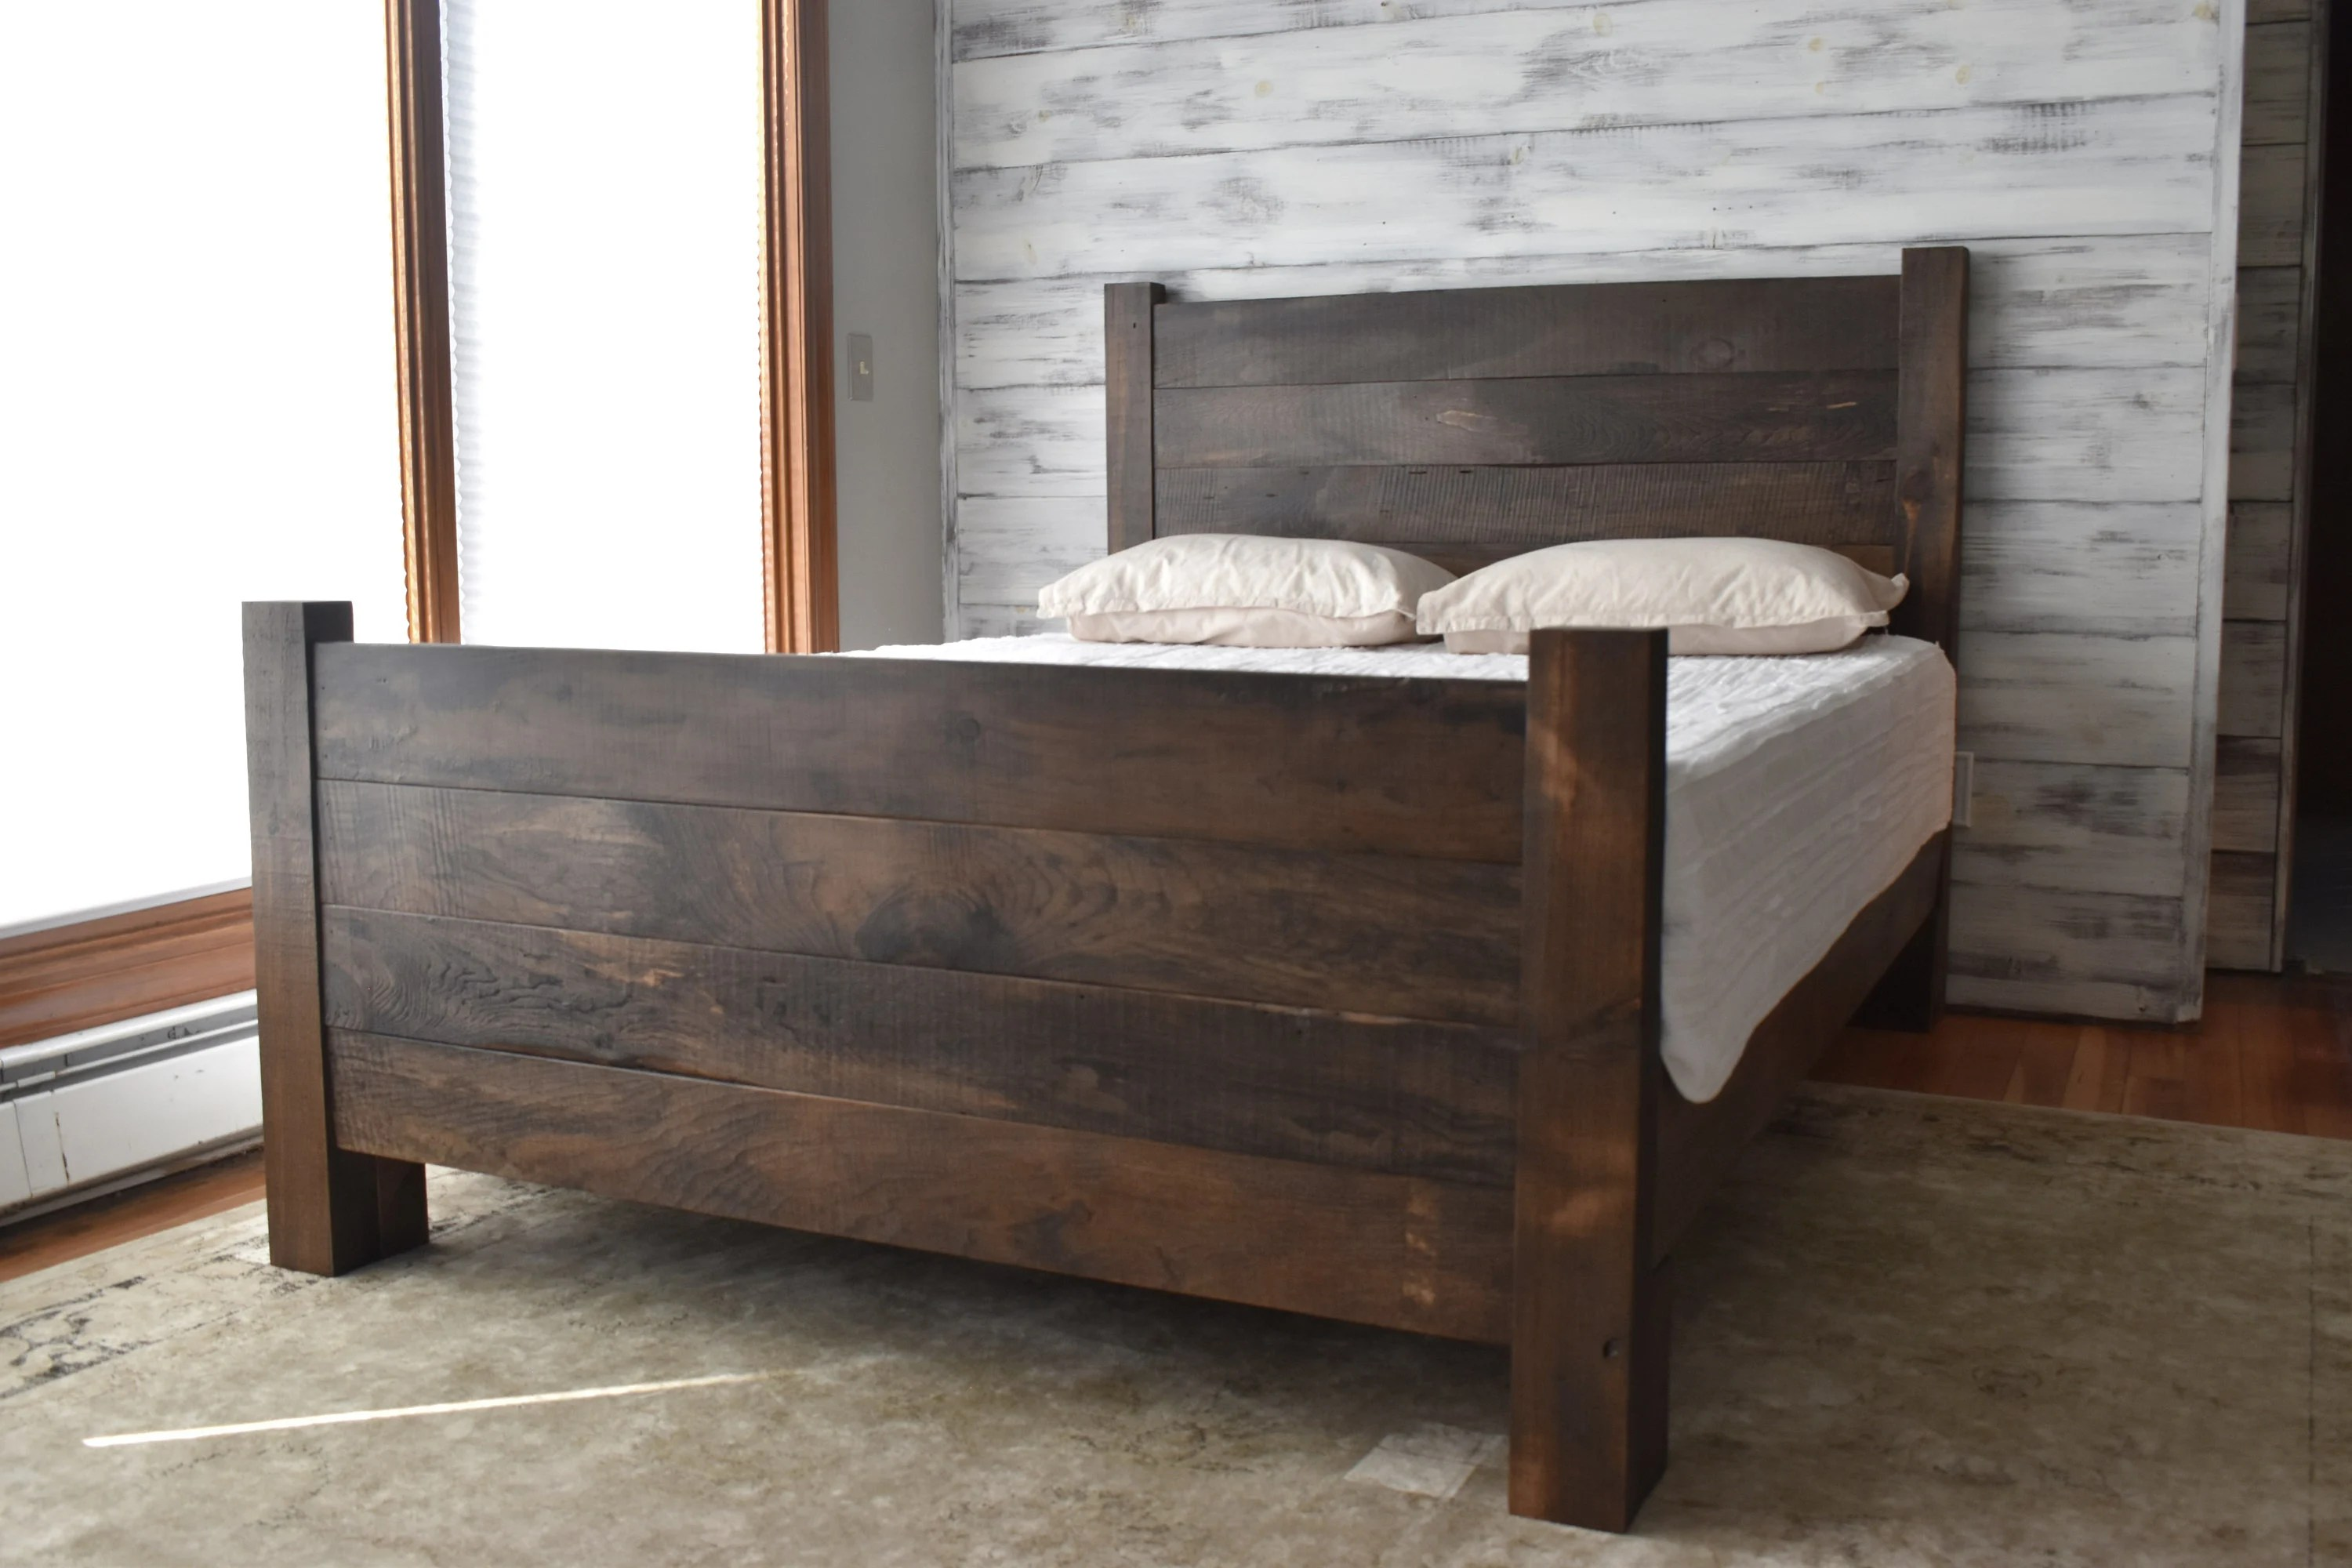 Queen Bed Frame Wood Bed Frame Platform Bed Queen Bed King Headboard Modern Farmhouse Bedroom Furniture